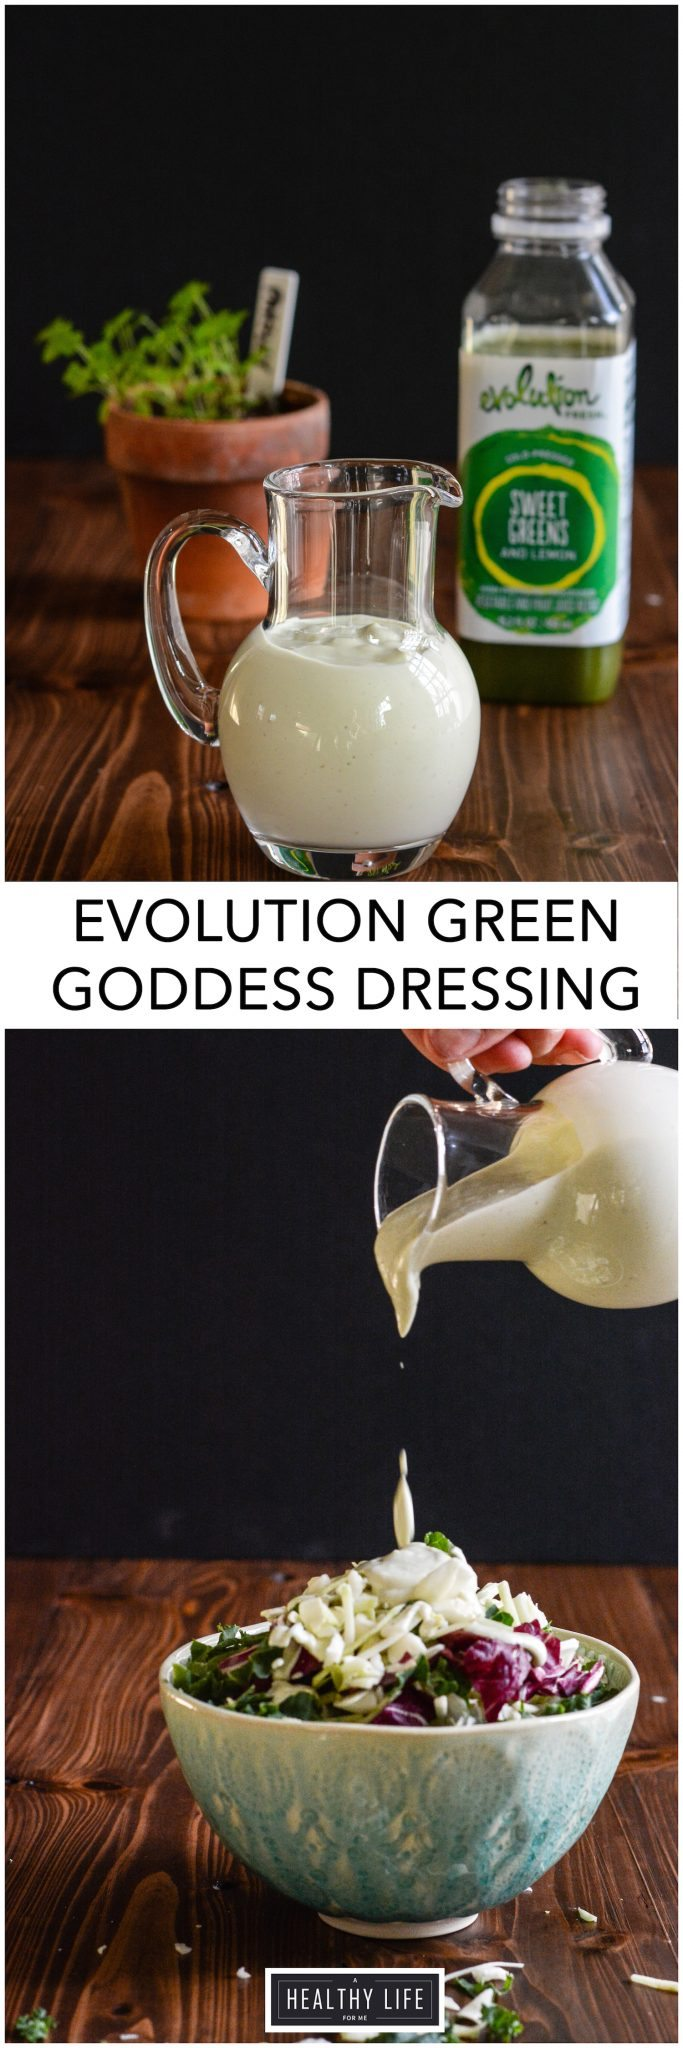 This simple Green Goddess Dressing is the perfect all around salad dressing, vegetable dipper or cracker spreader.